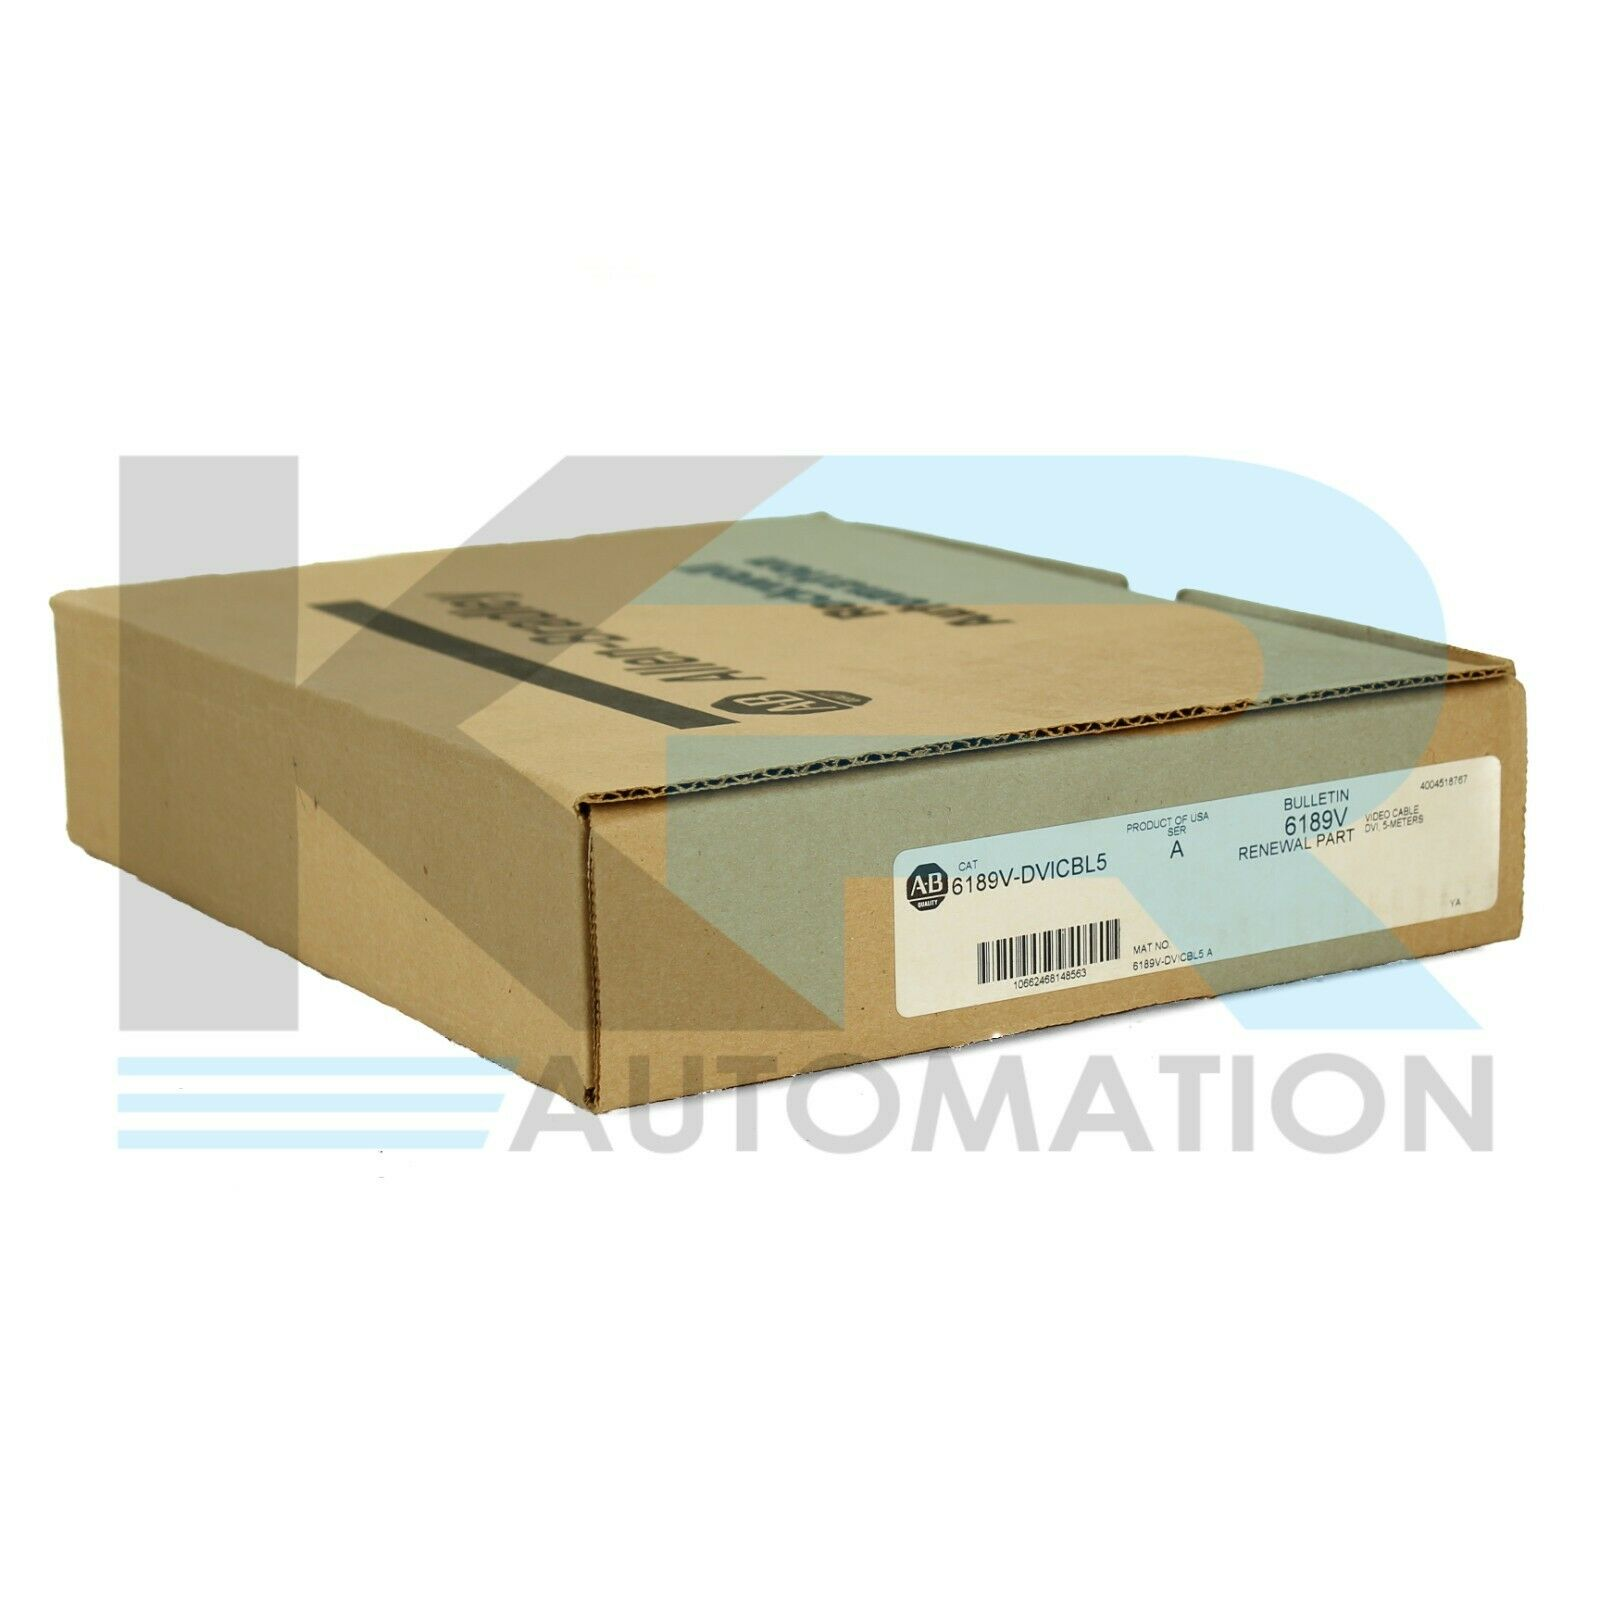 Allen Bradley 6189V-DVICBL5 DVI-D Male to DVI-D Male Link Cable